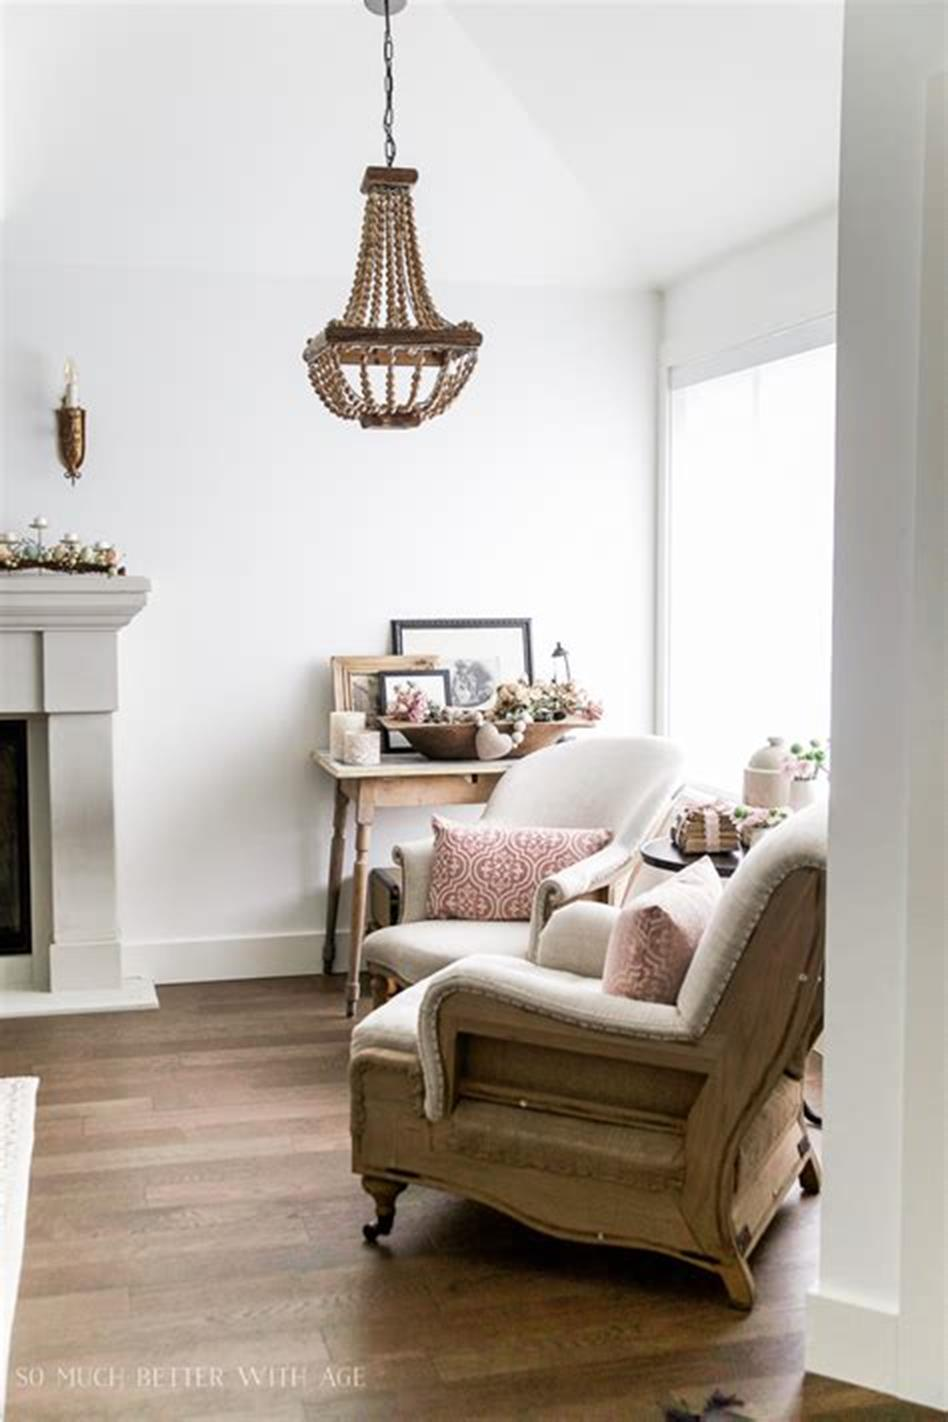 37 Beautiful Farmhouse Spring Decorating Ideas On a Budget for 2019 7